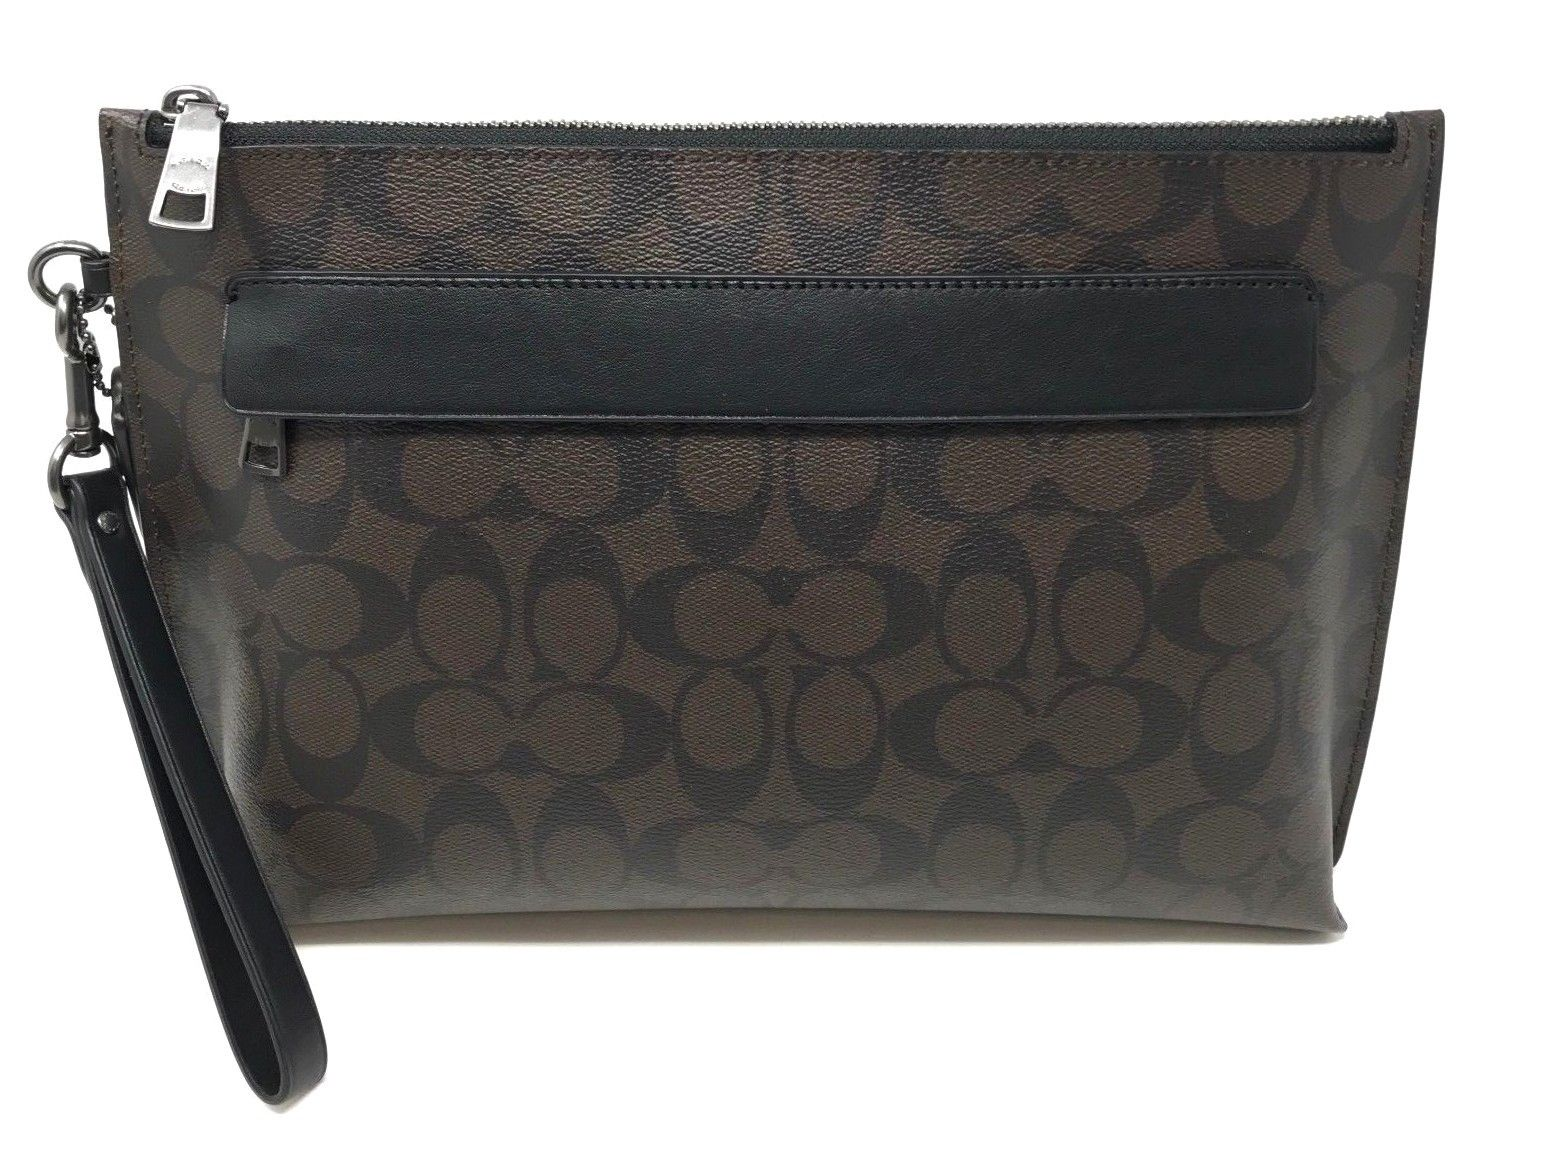 Coach Men's Carryall Pouch In Signature Canvas Mahogany Black Bag F29508 $250